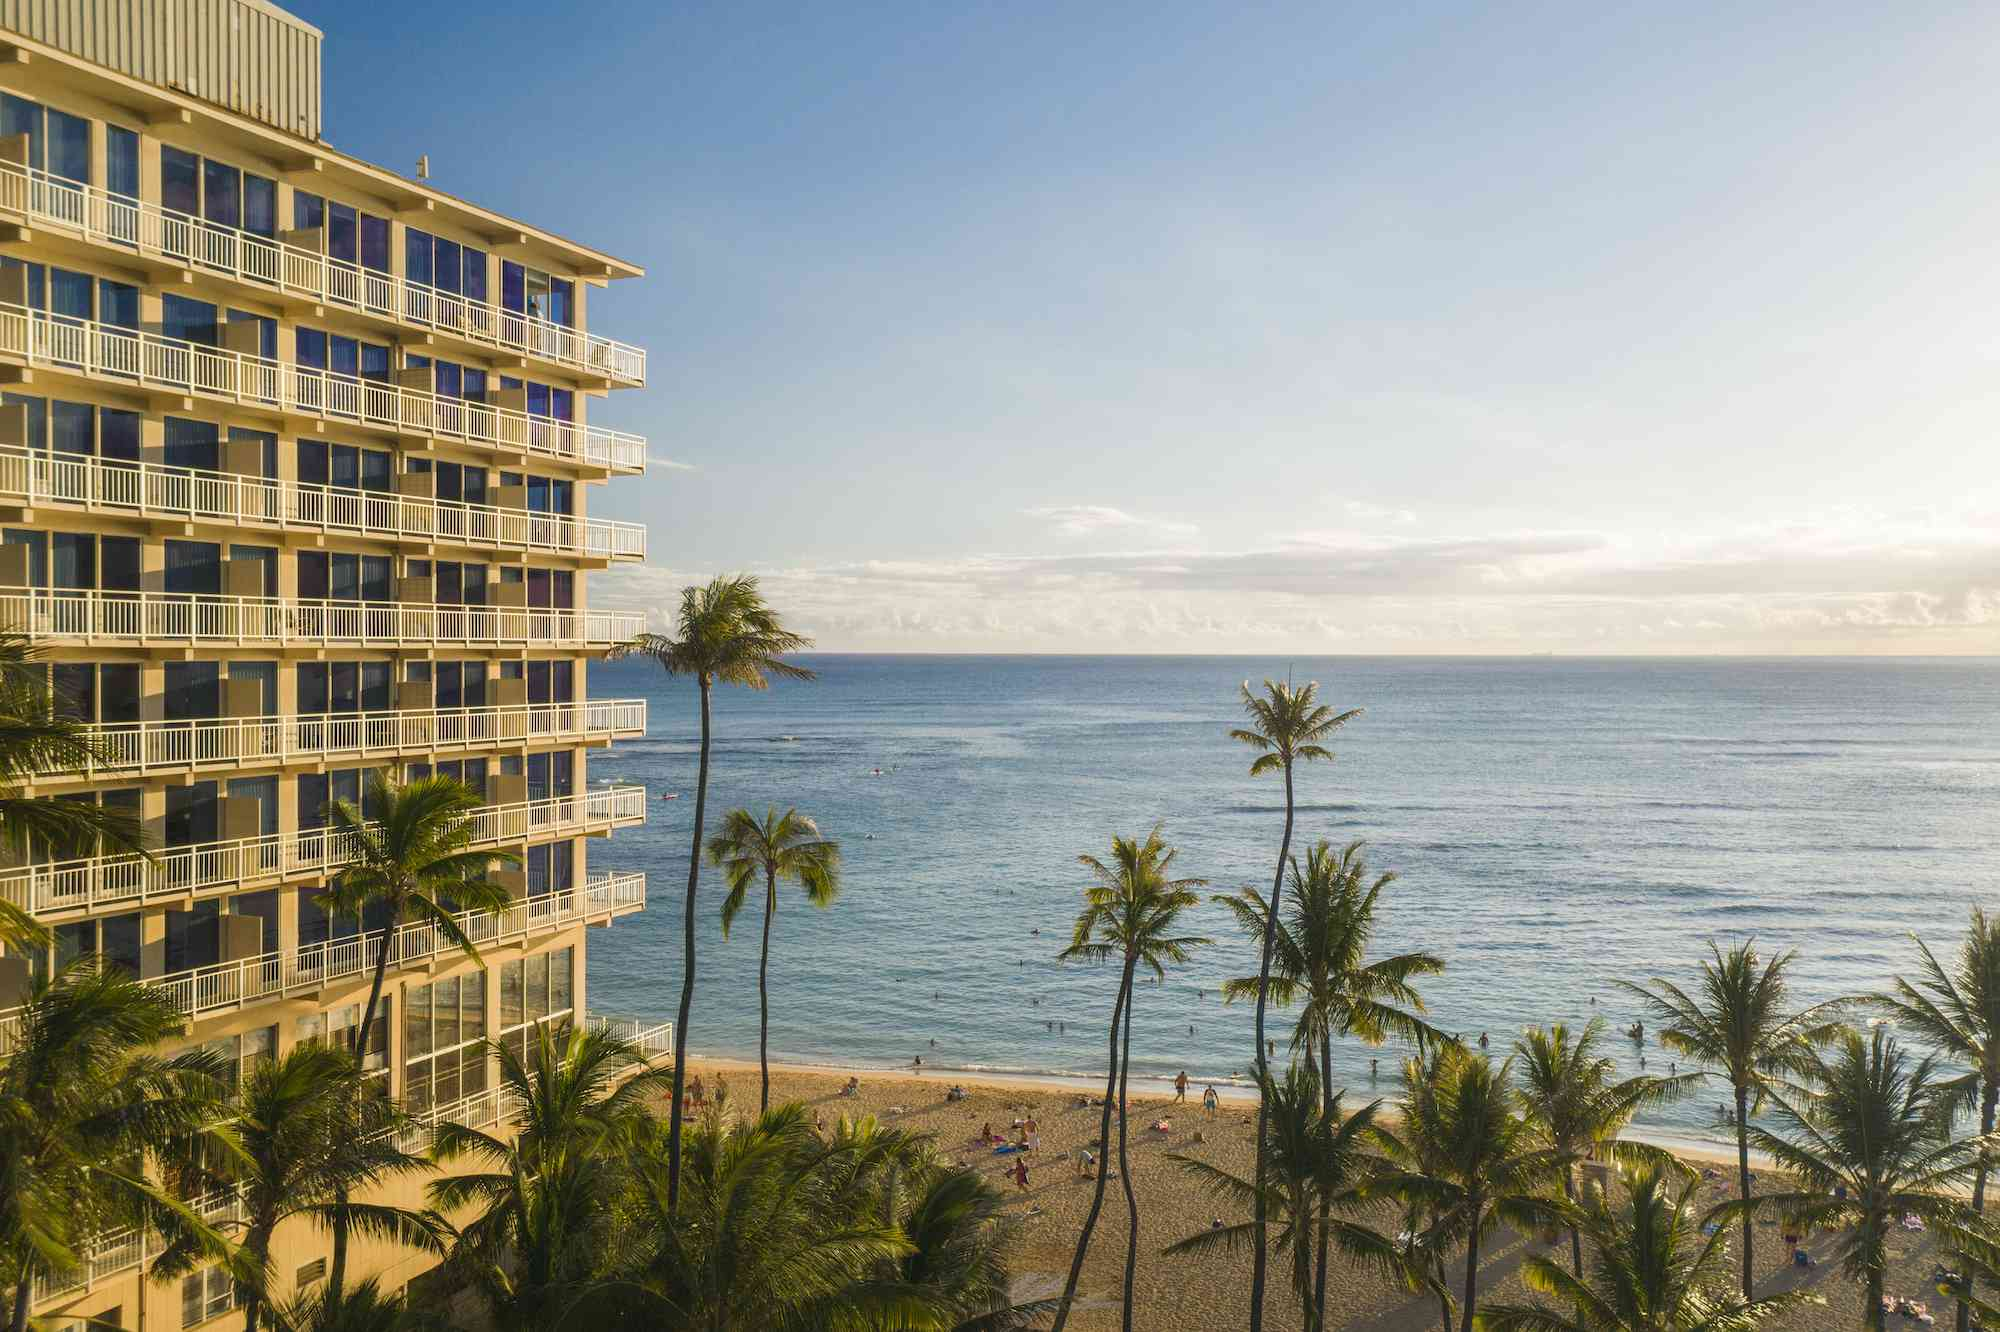 Exterior view of Kaimana Beach Hotel with the beach and water visible from the hotel's entrance